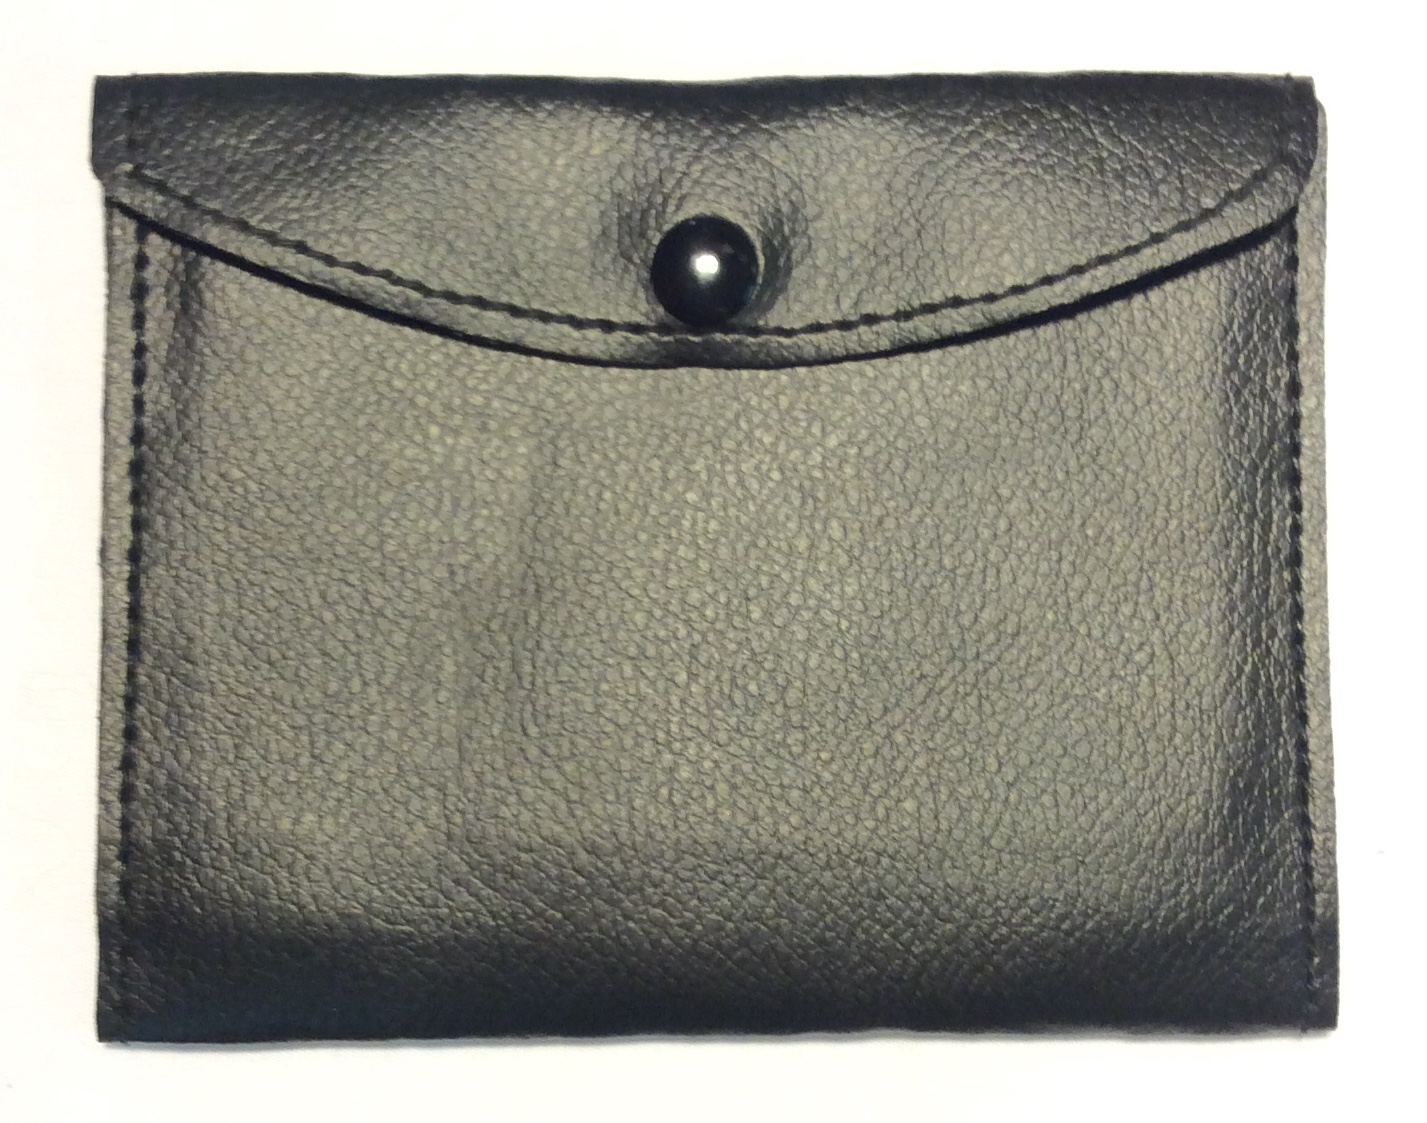 Very thin black leather wallet